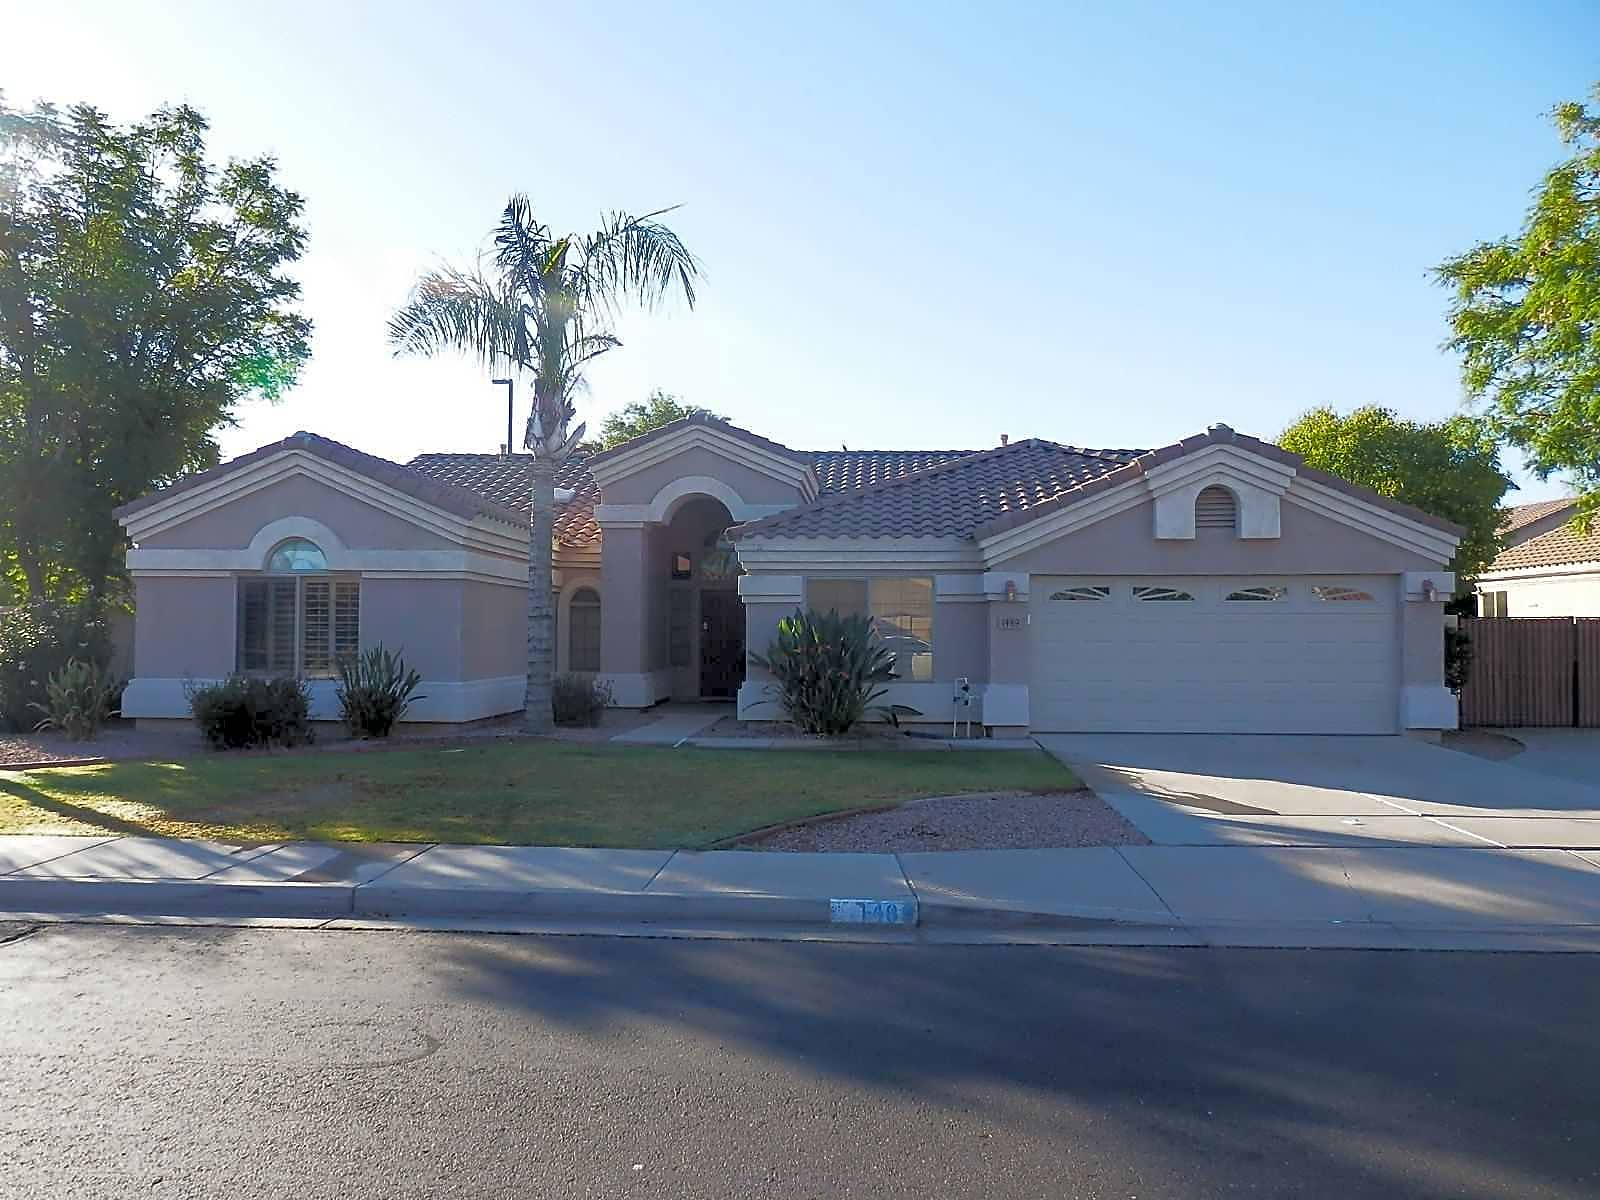 Rental Homes In Gilbert Az With Pool